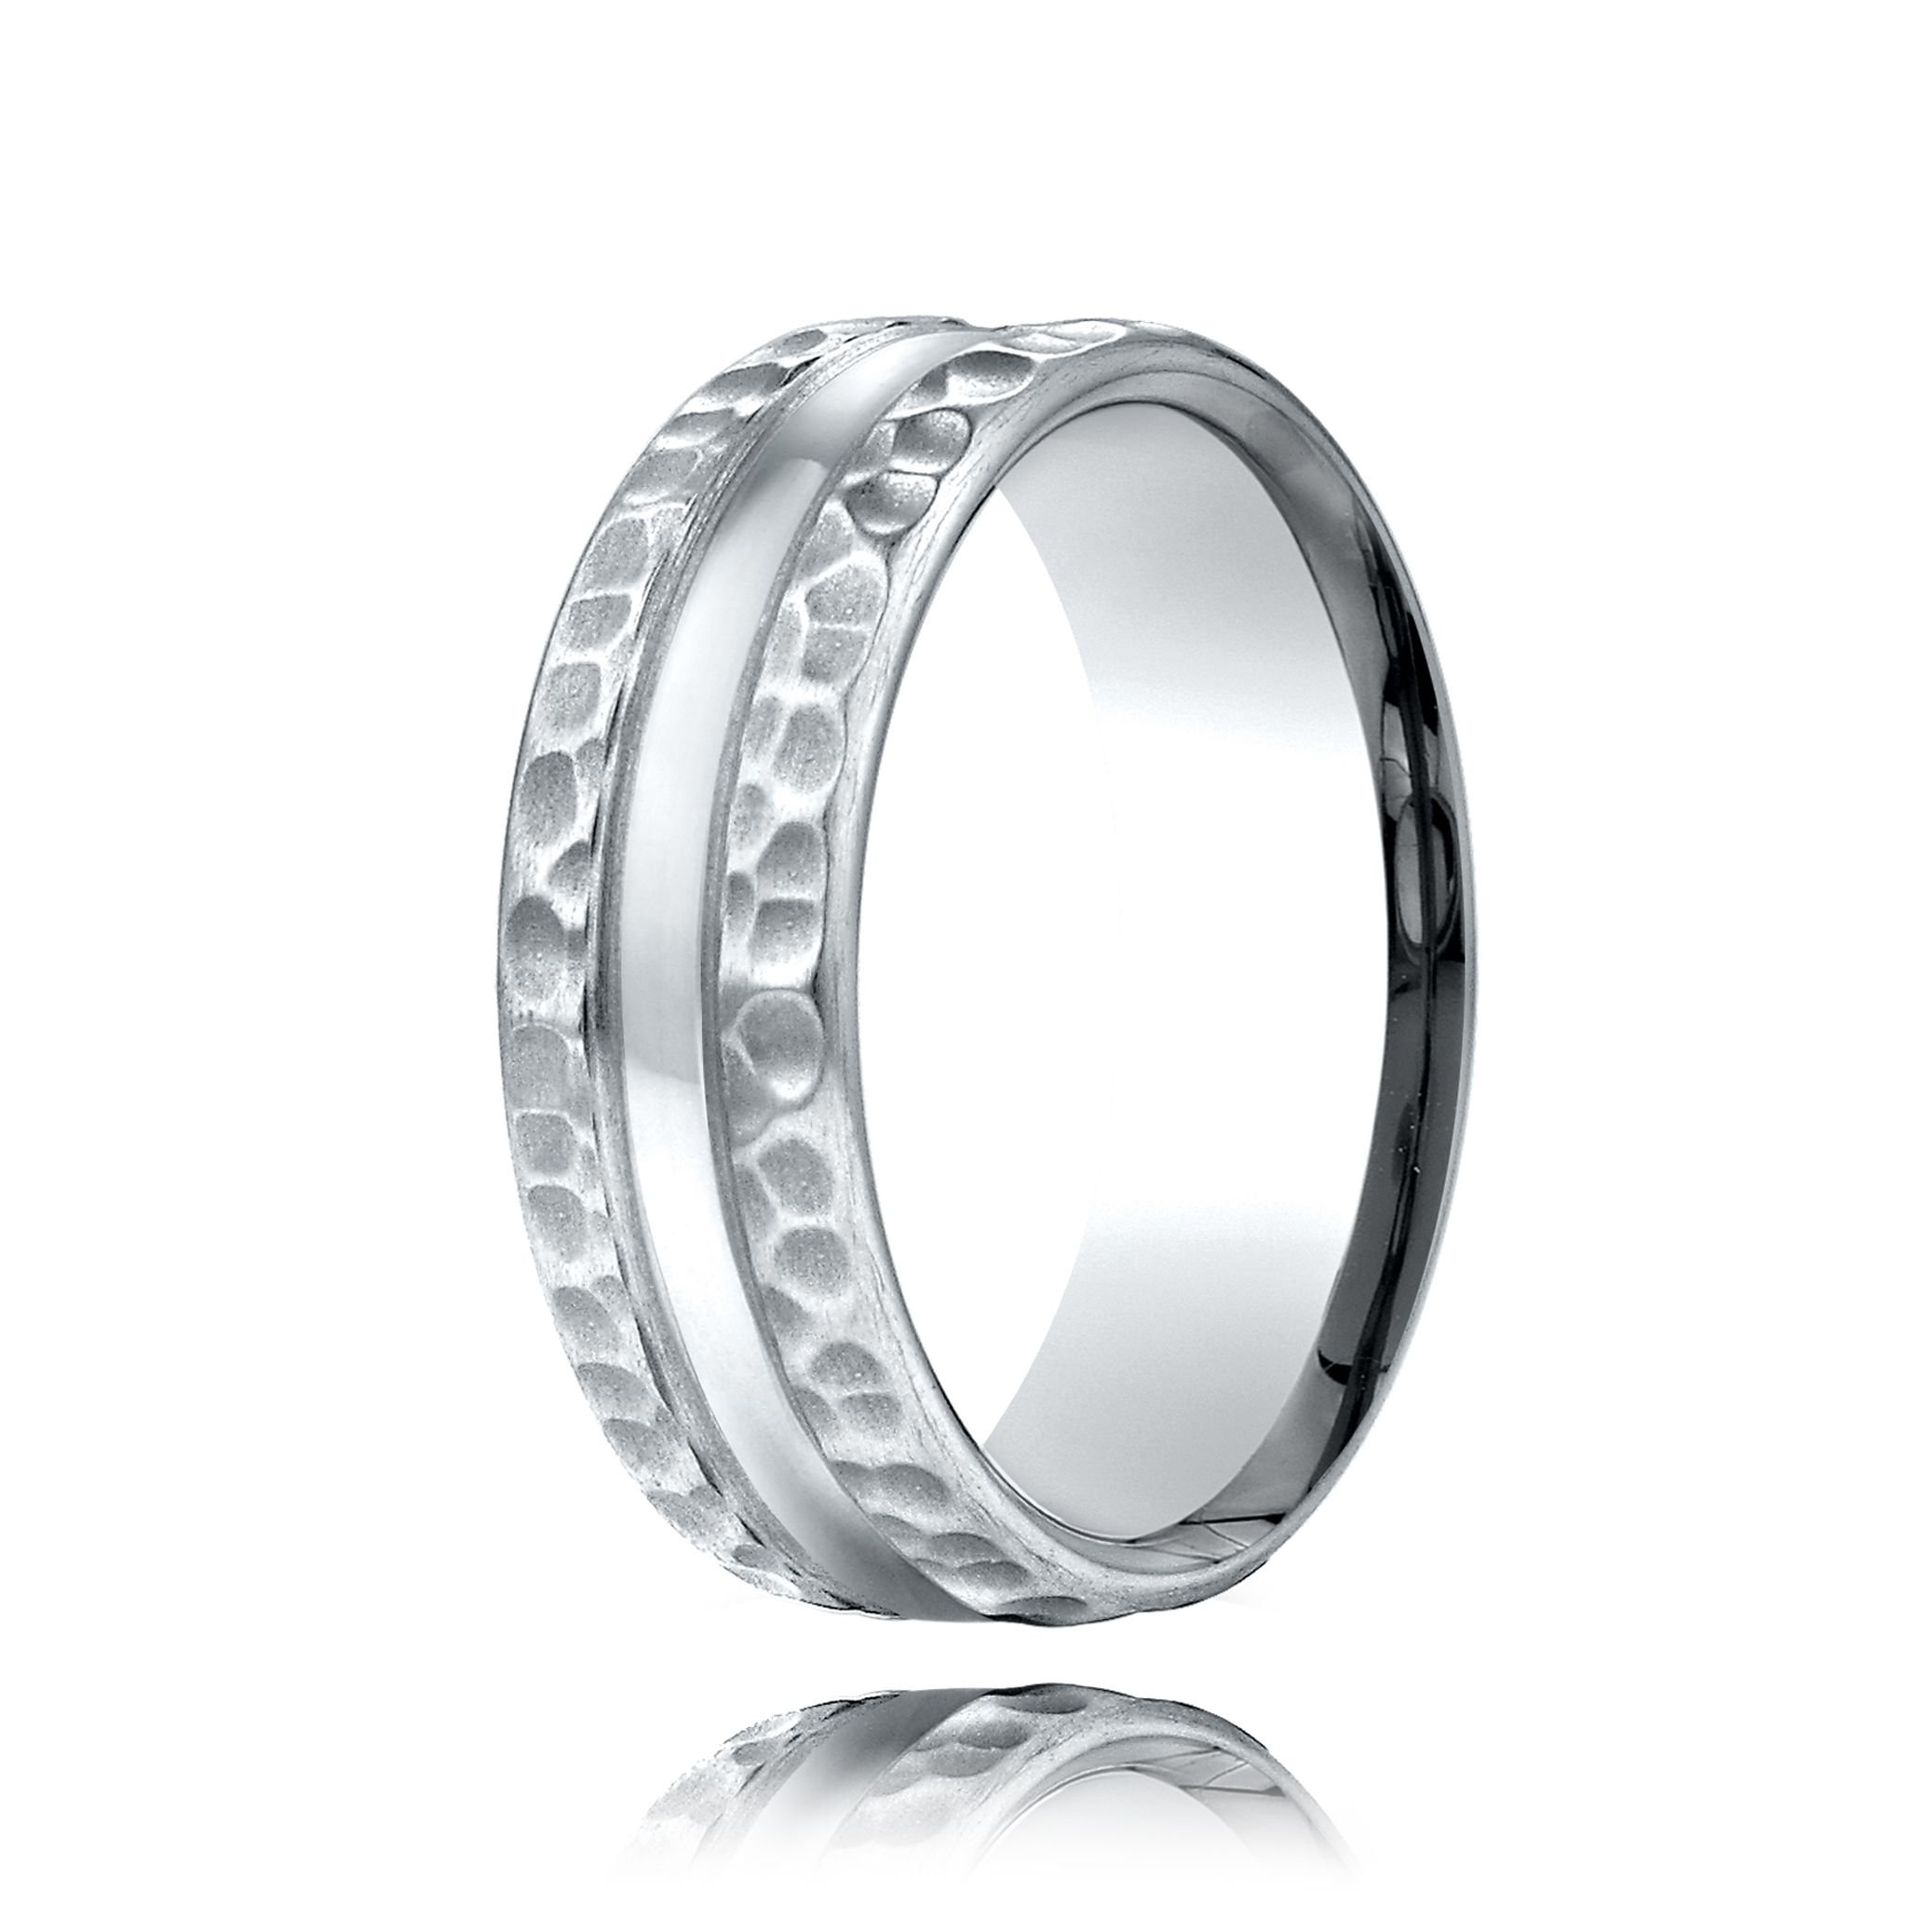 Palladium Hammered Finish Wedding Band Rings For Men Affordable Wedding Ring Mens Wedding Rings